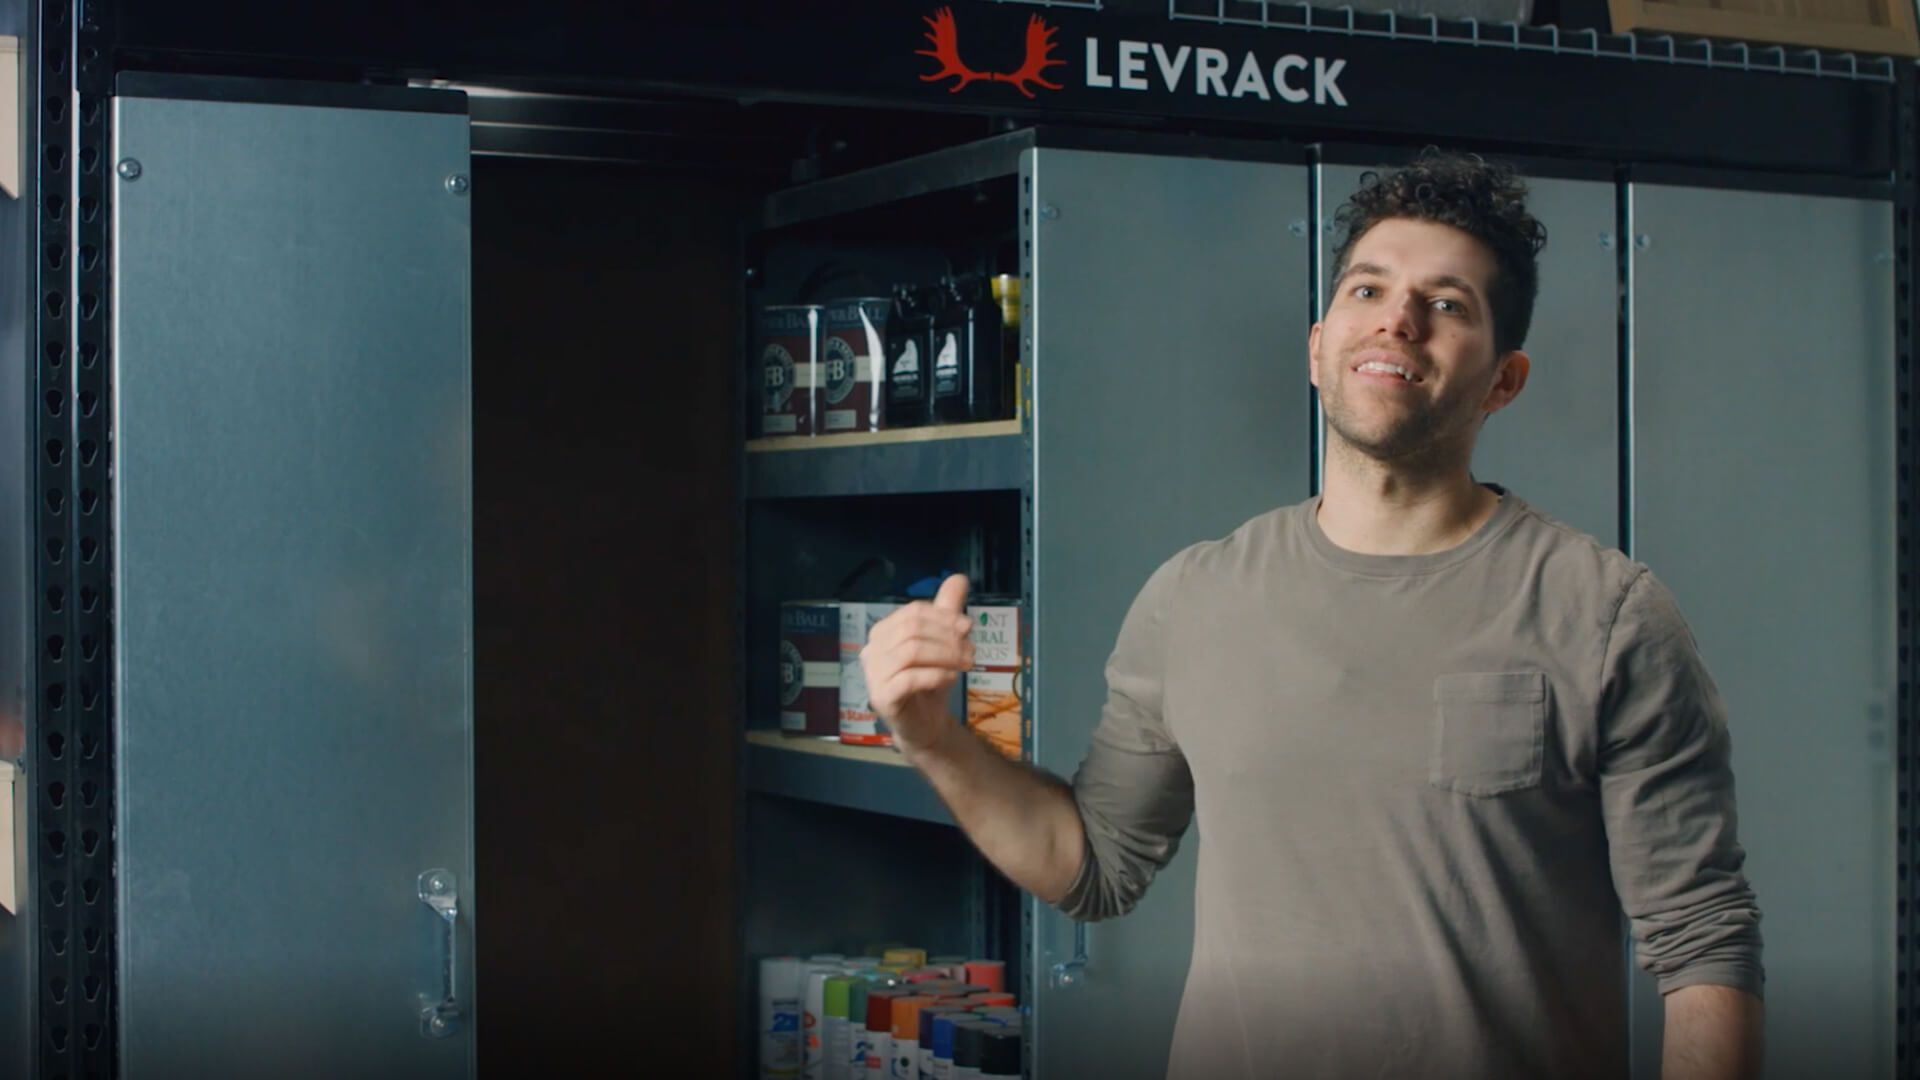 Levrack featured with Ethan Ambramson